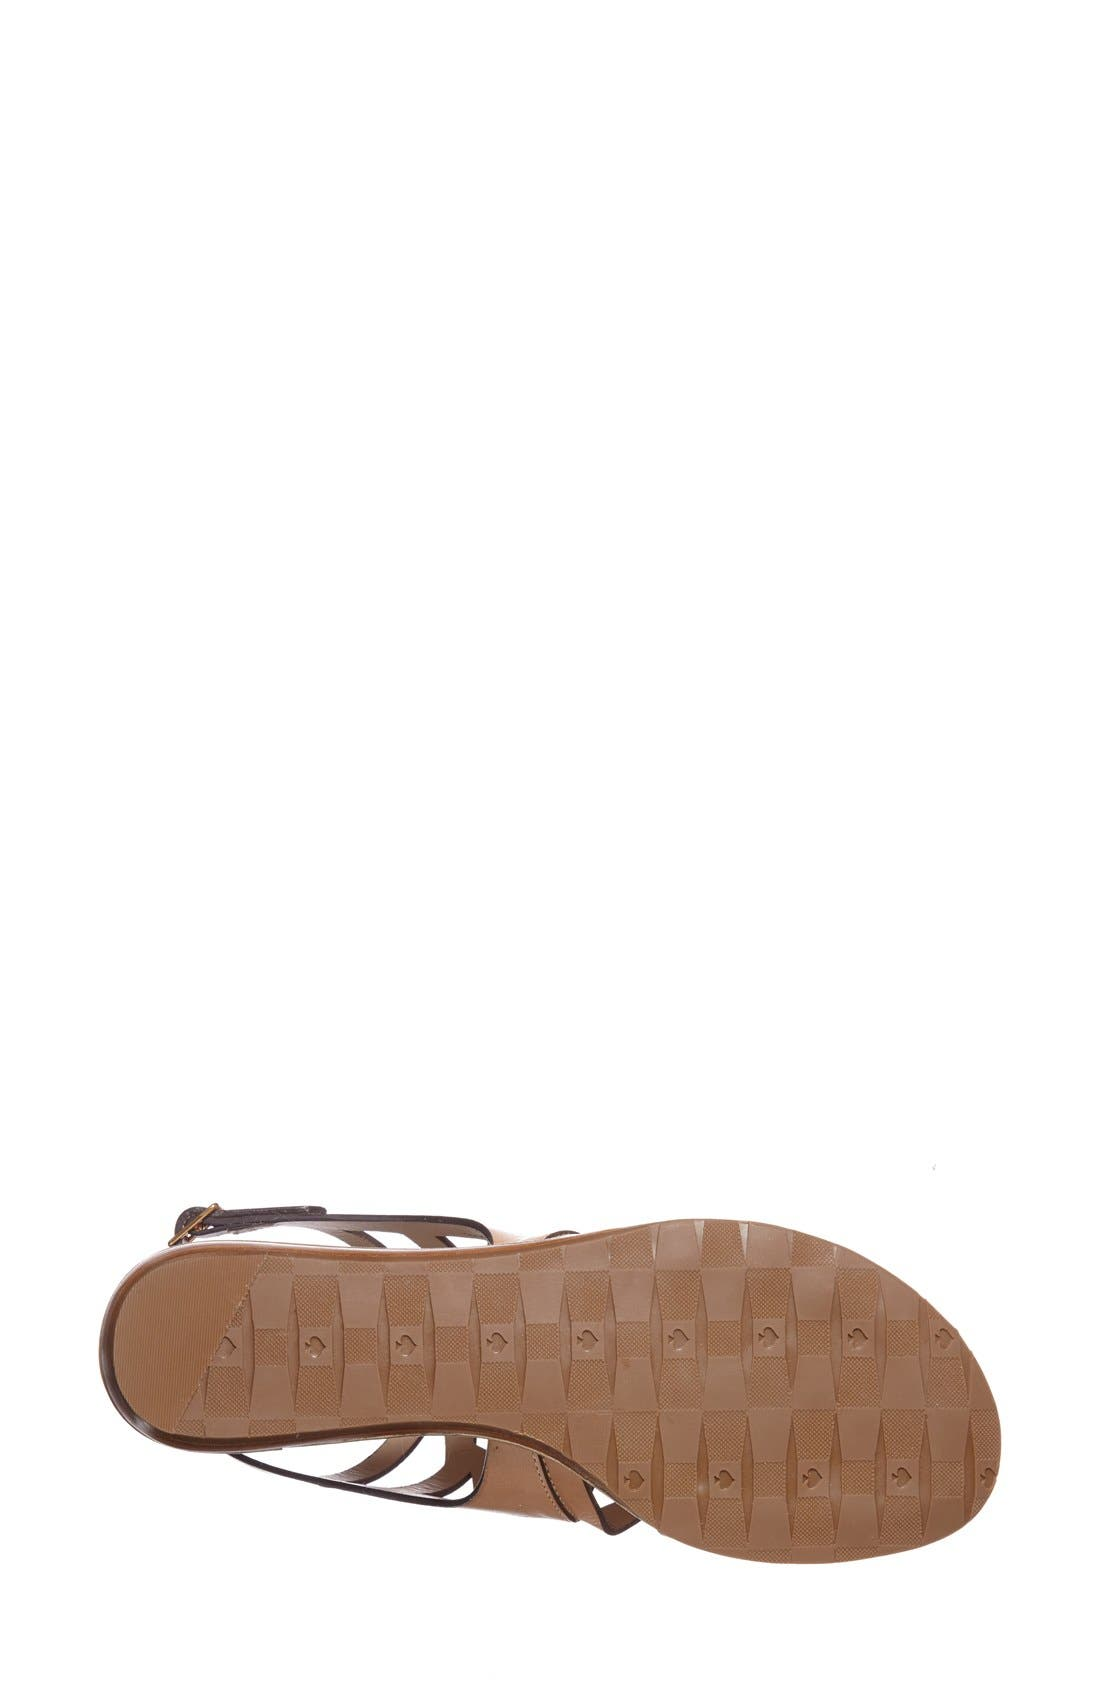 Alternate Image 4  - kate spade new york 'aster' flat sandal